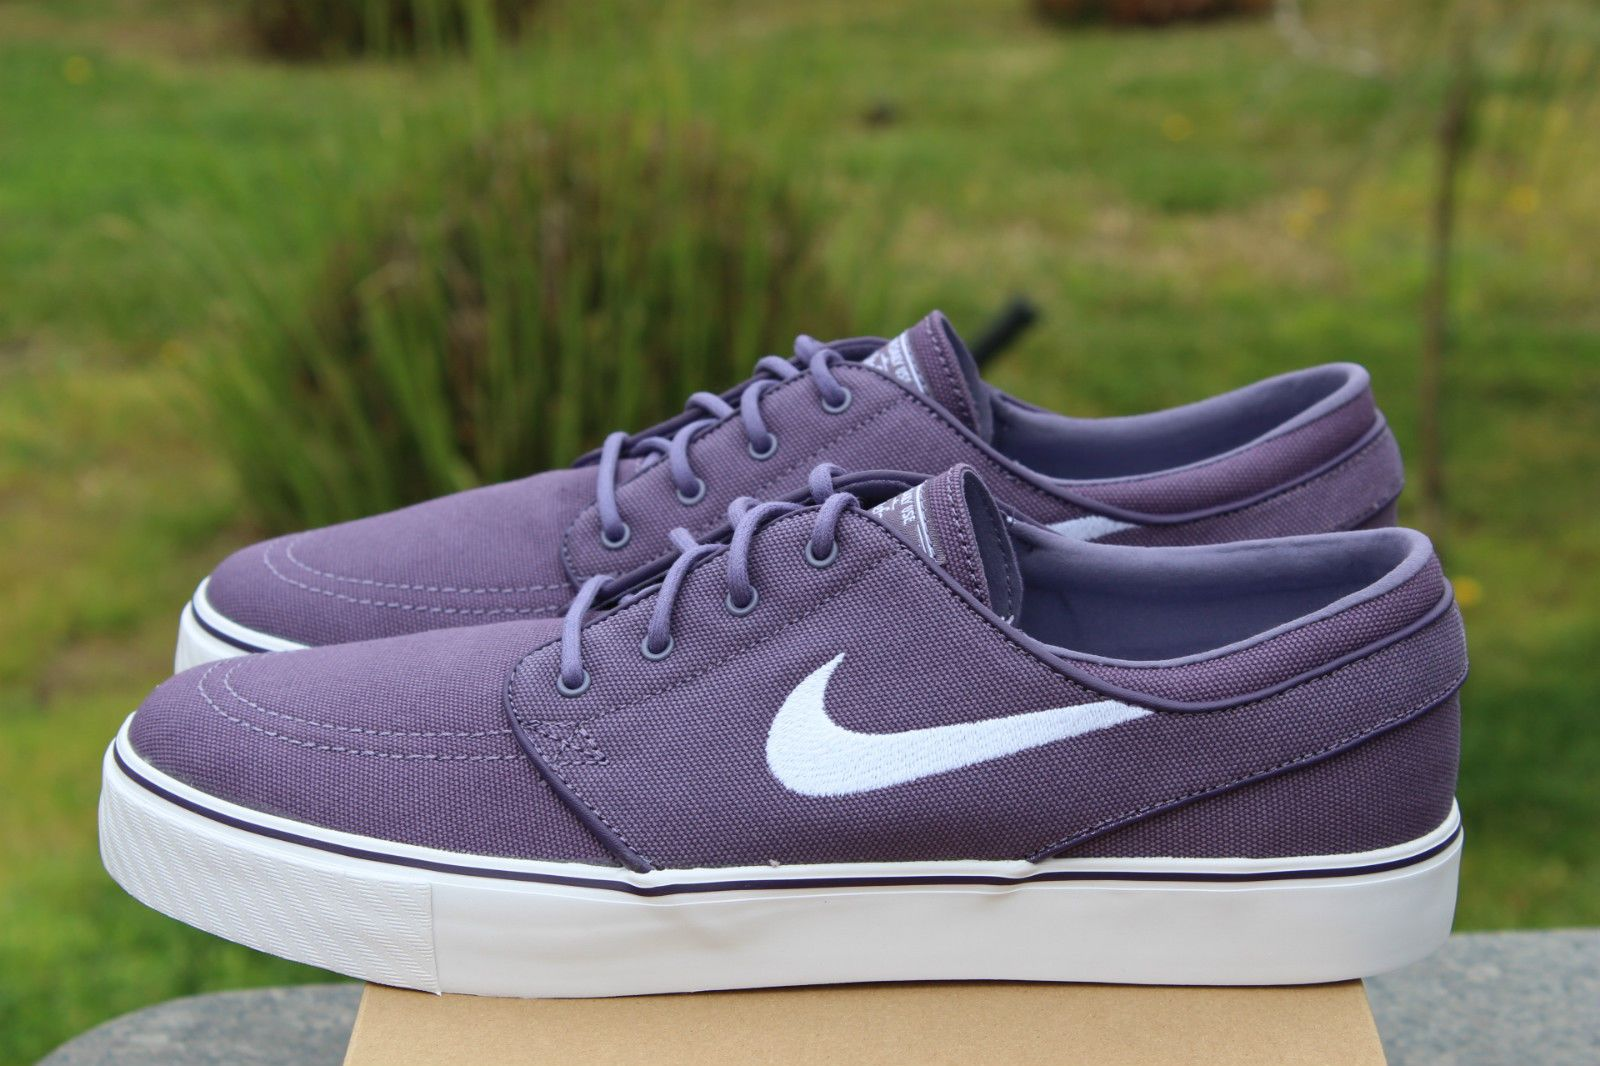 43845025a5f2 Nike Zoom Stefan Janoski SB Sz 12 Grand Canyon Purple White ...